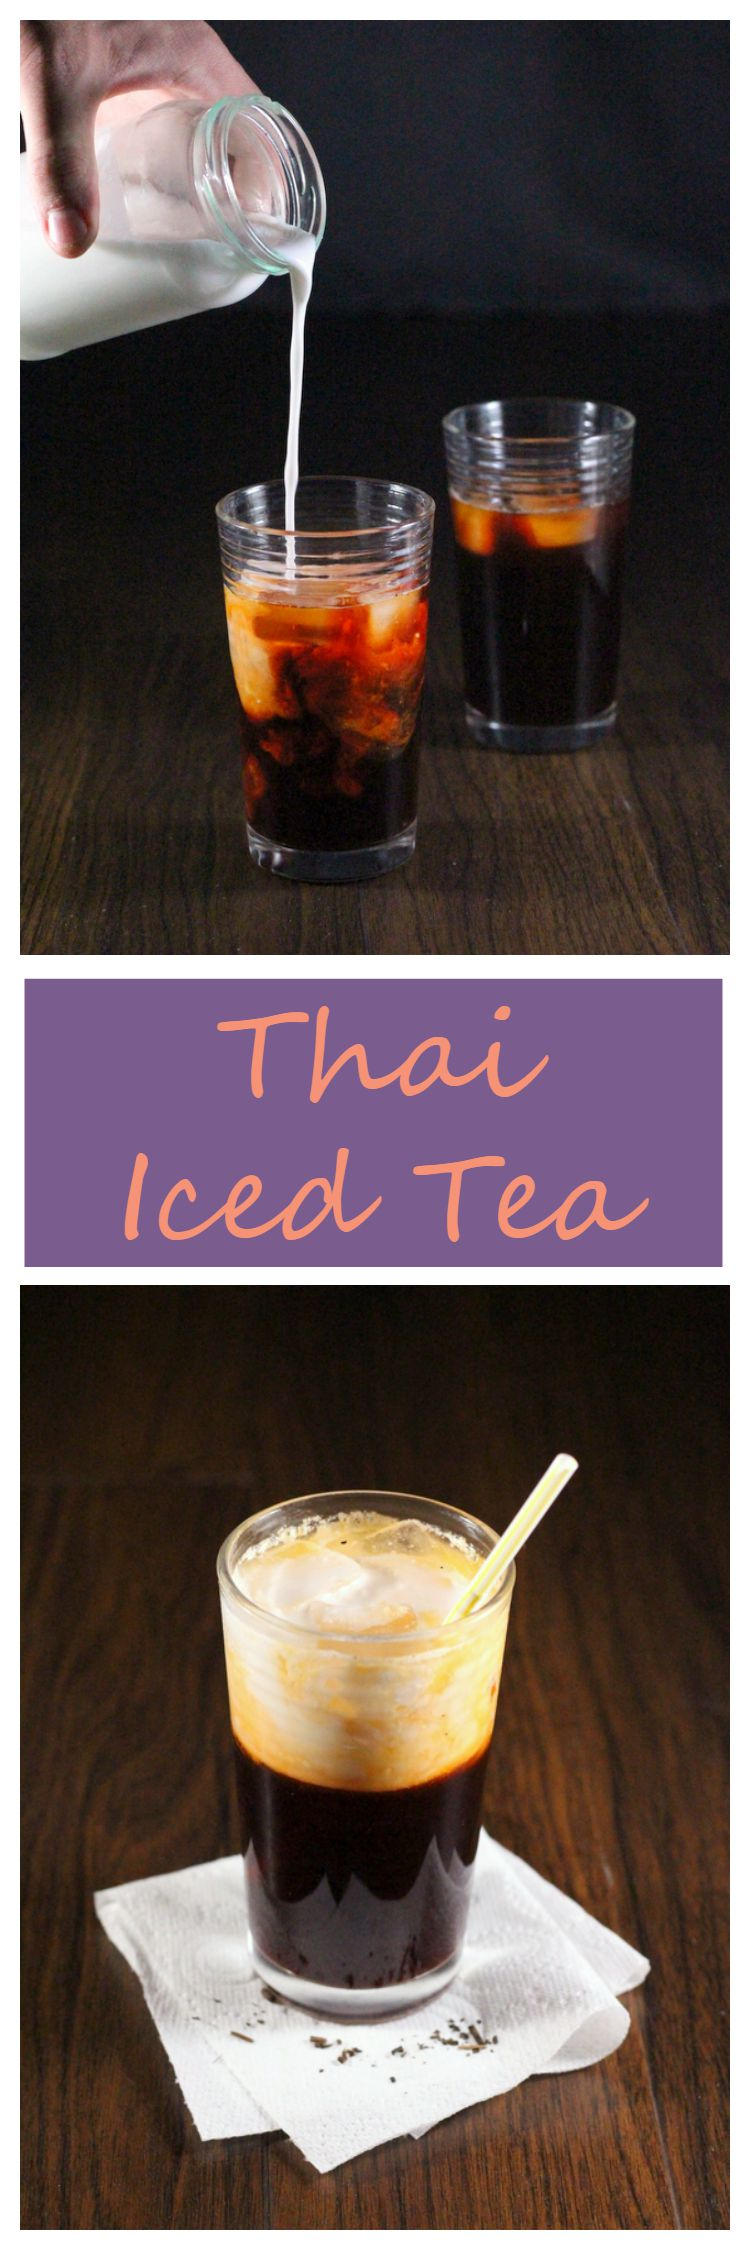 Thai Iced Tea Cooking Is Messy